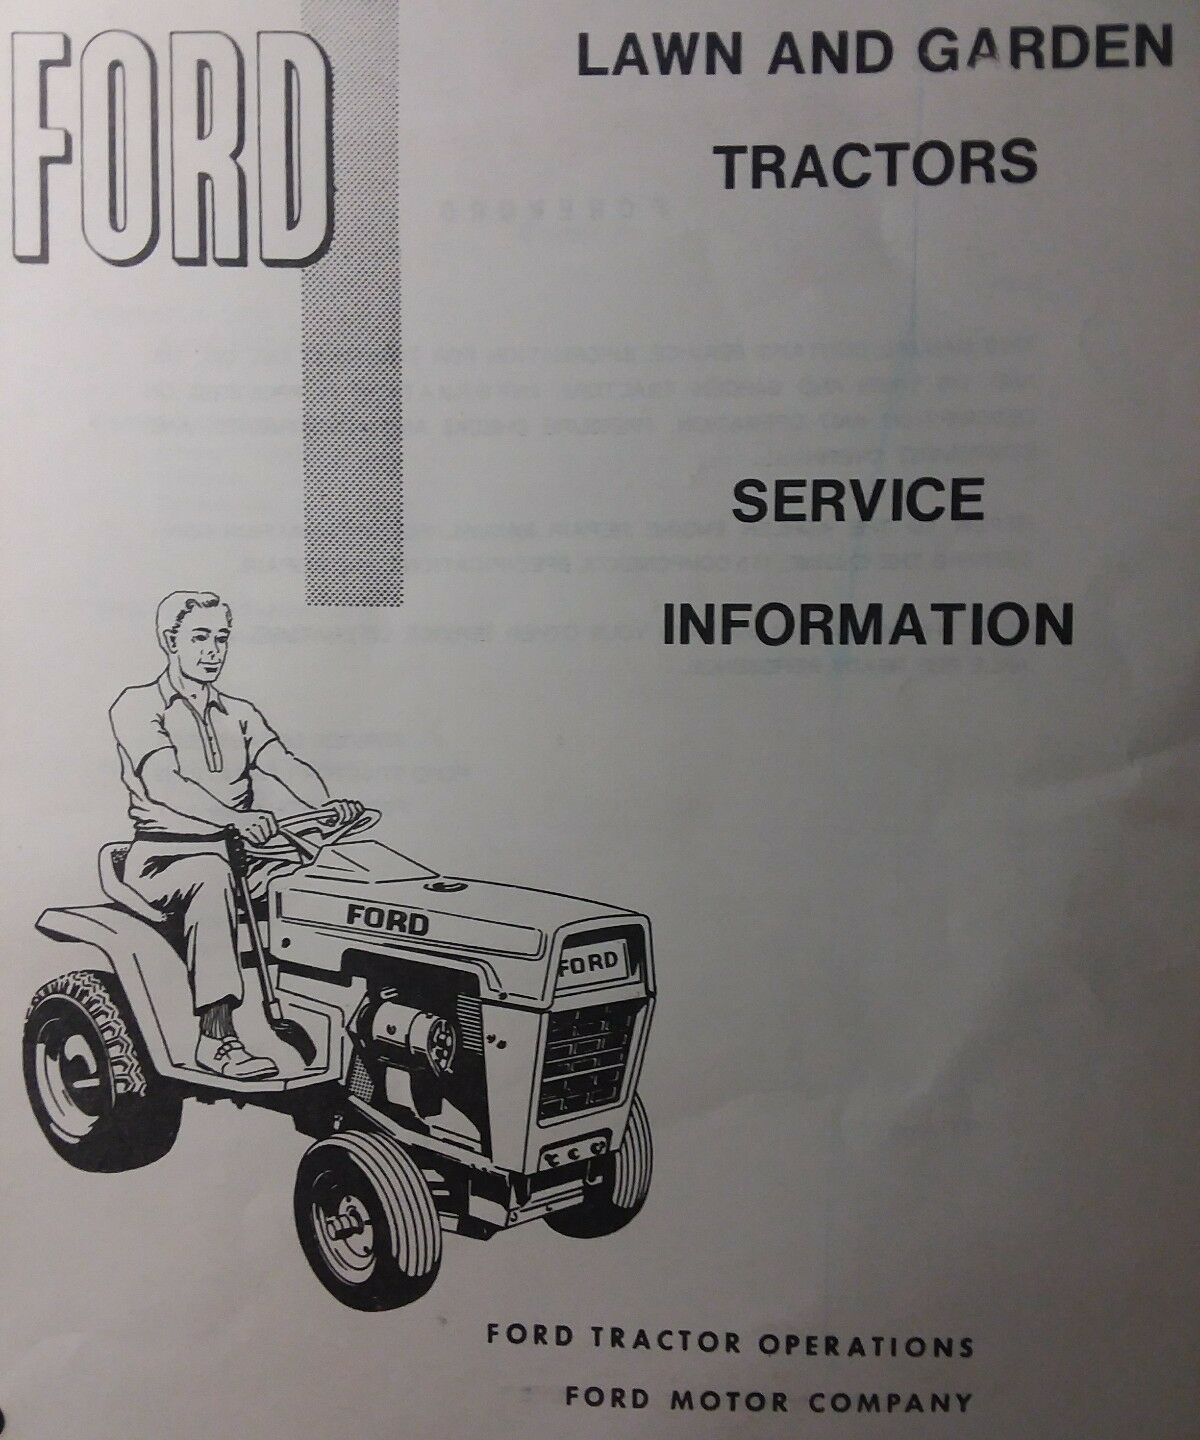 Ford 100 120 125 145 Lawn Garden Tractor Service Information 8n Loader Norton Secured Powered By Verisign